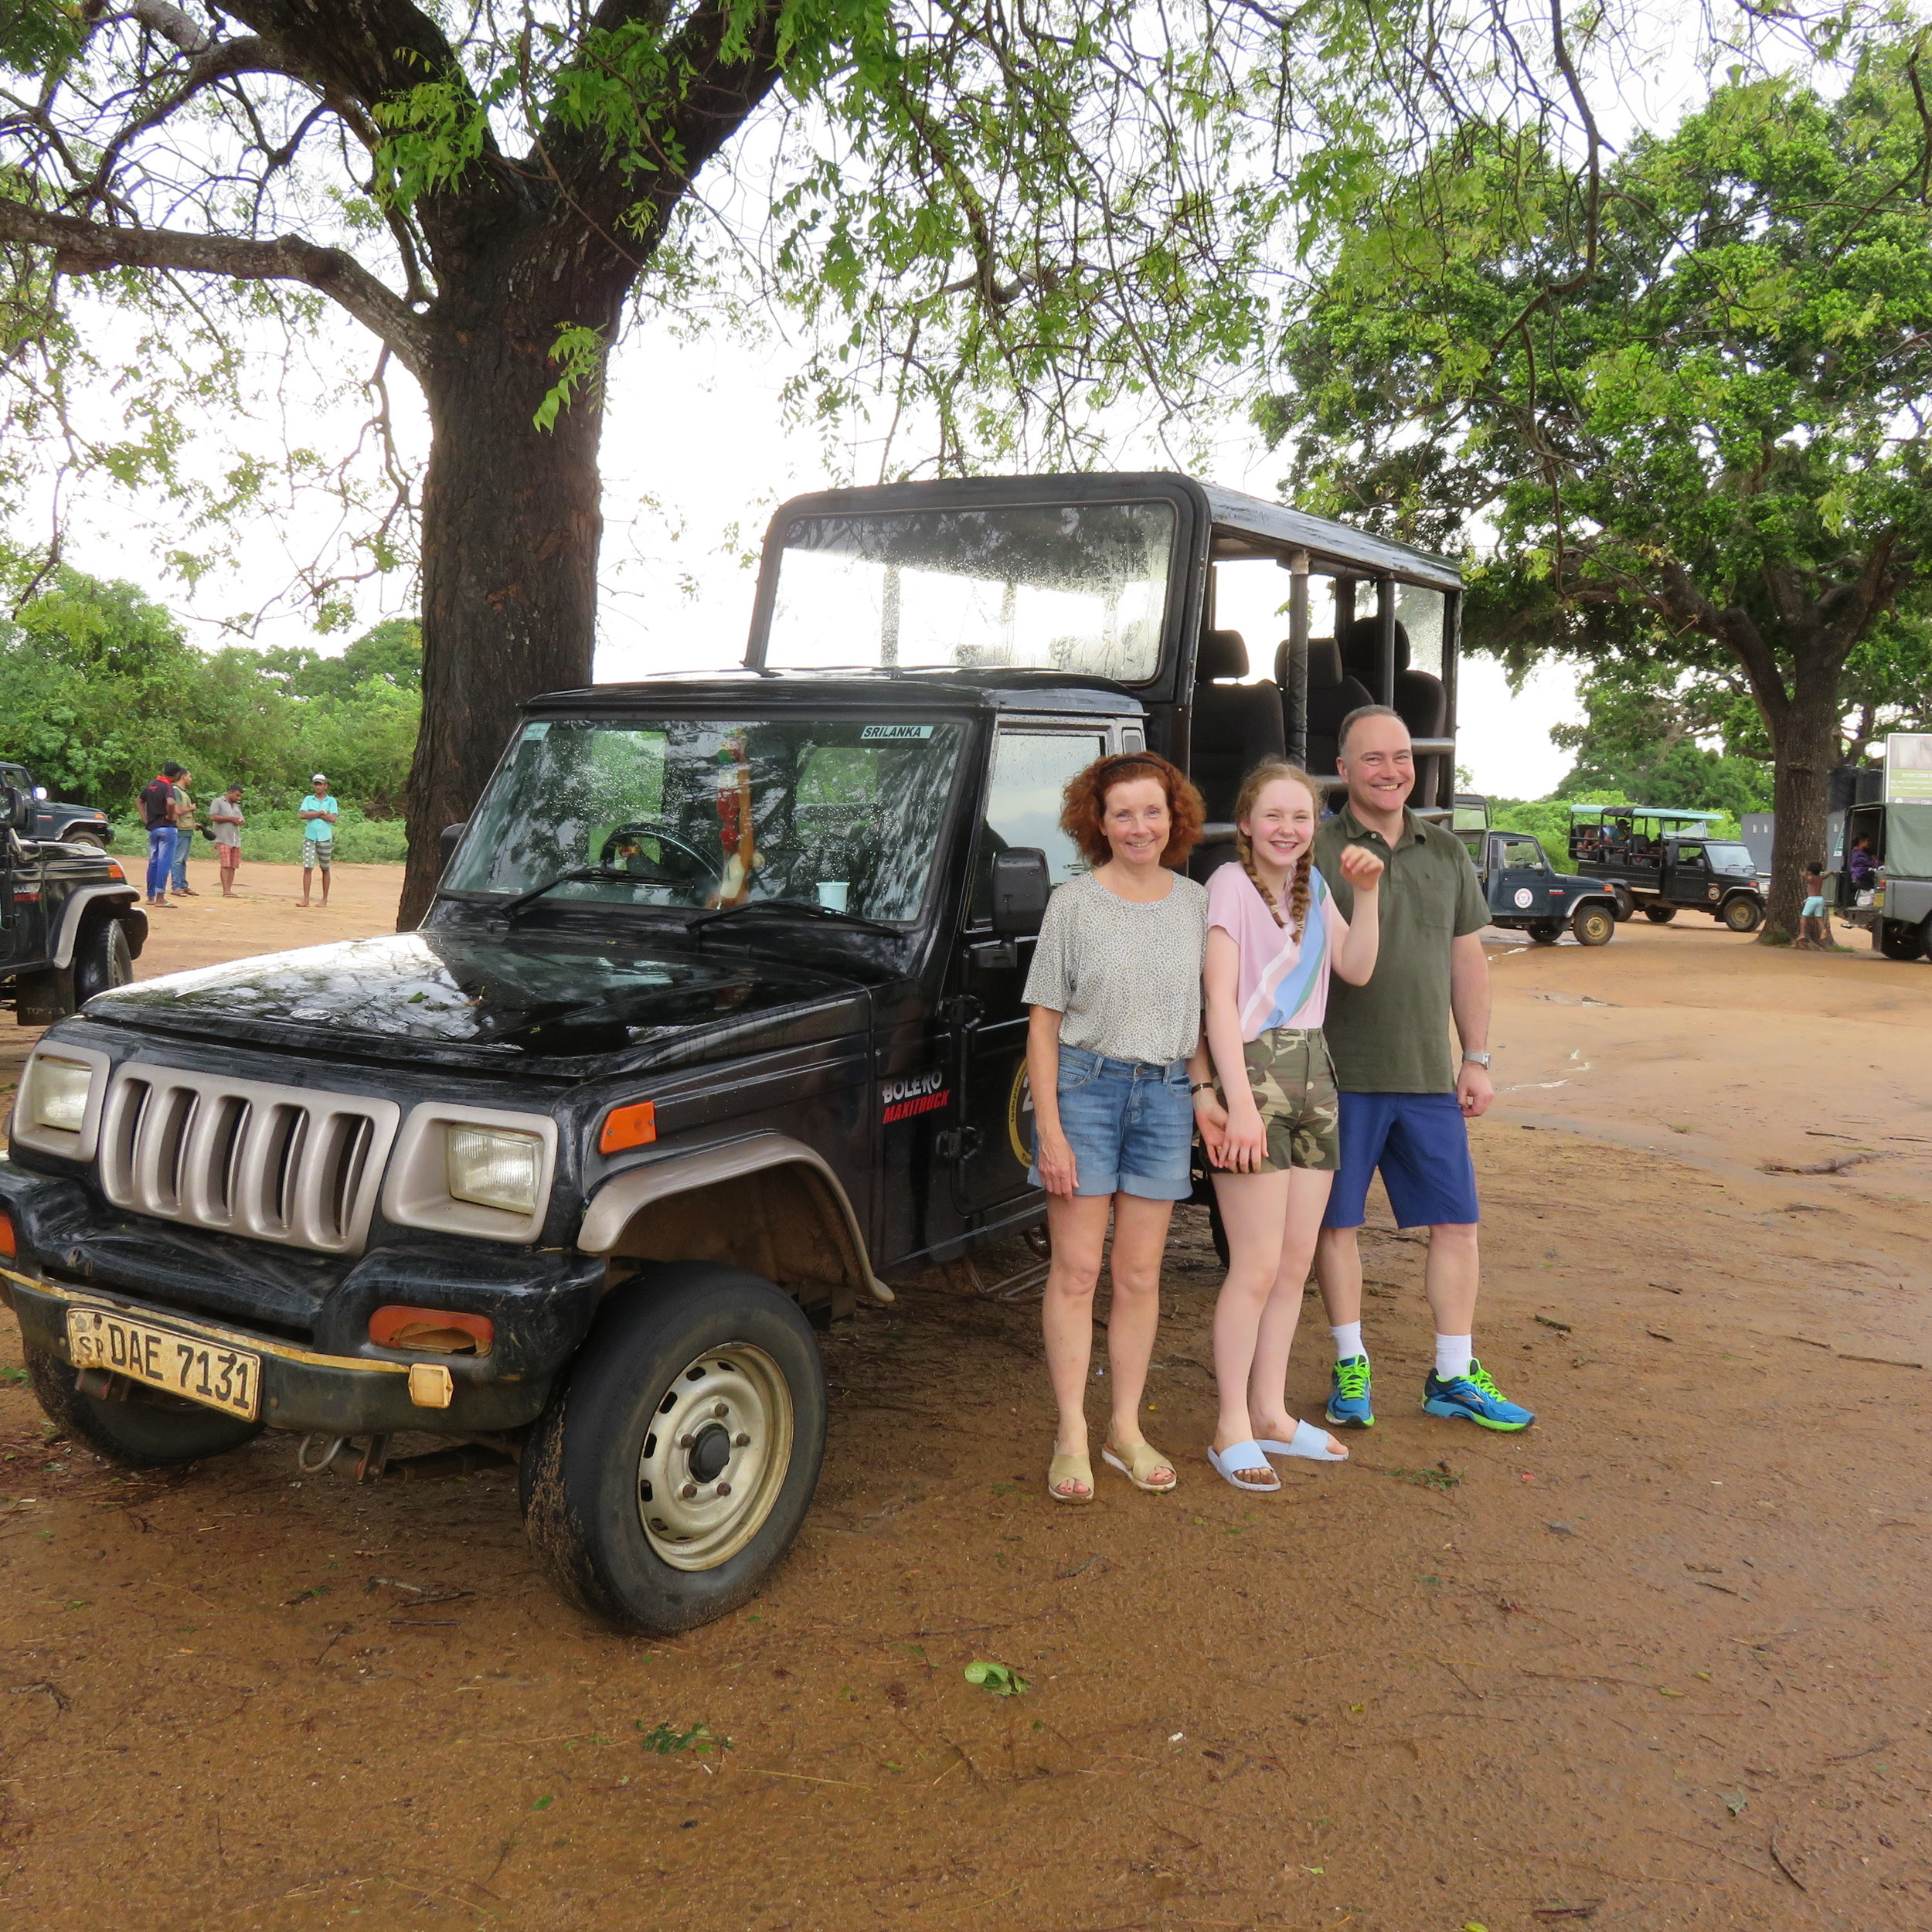 invite-to-paradise-sri-lanka-specialists-thomas-family-holiday-tour-yala-safari-jeep.JPG